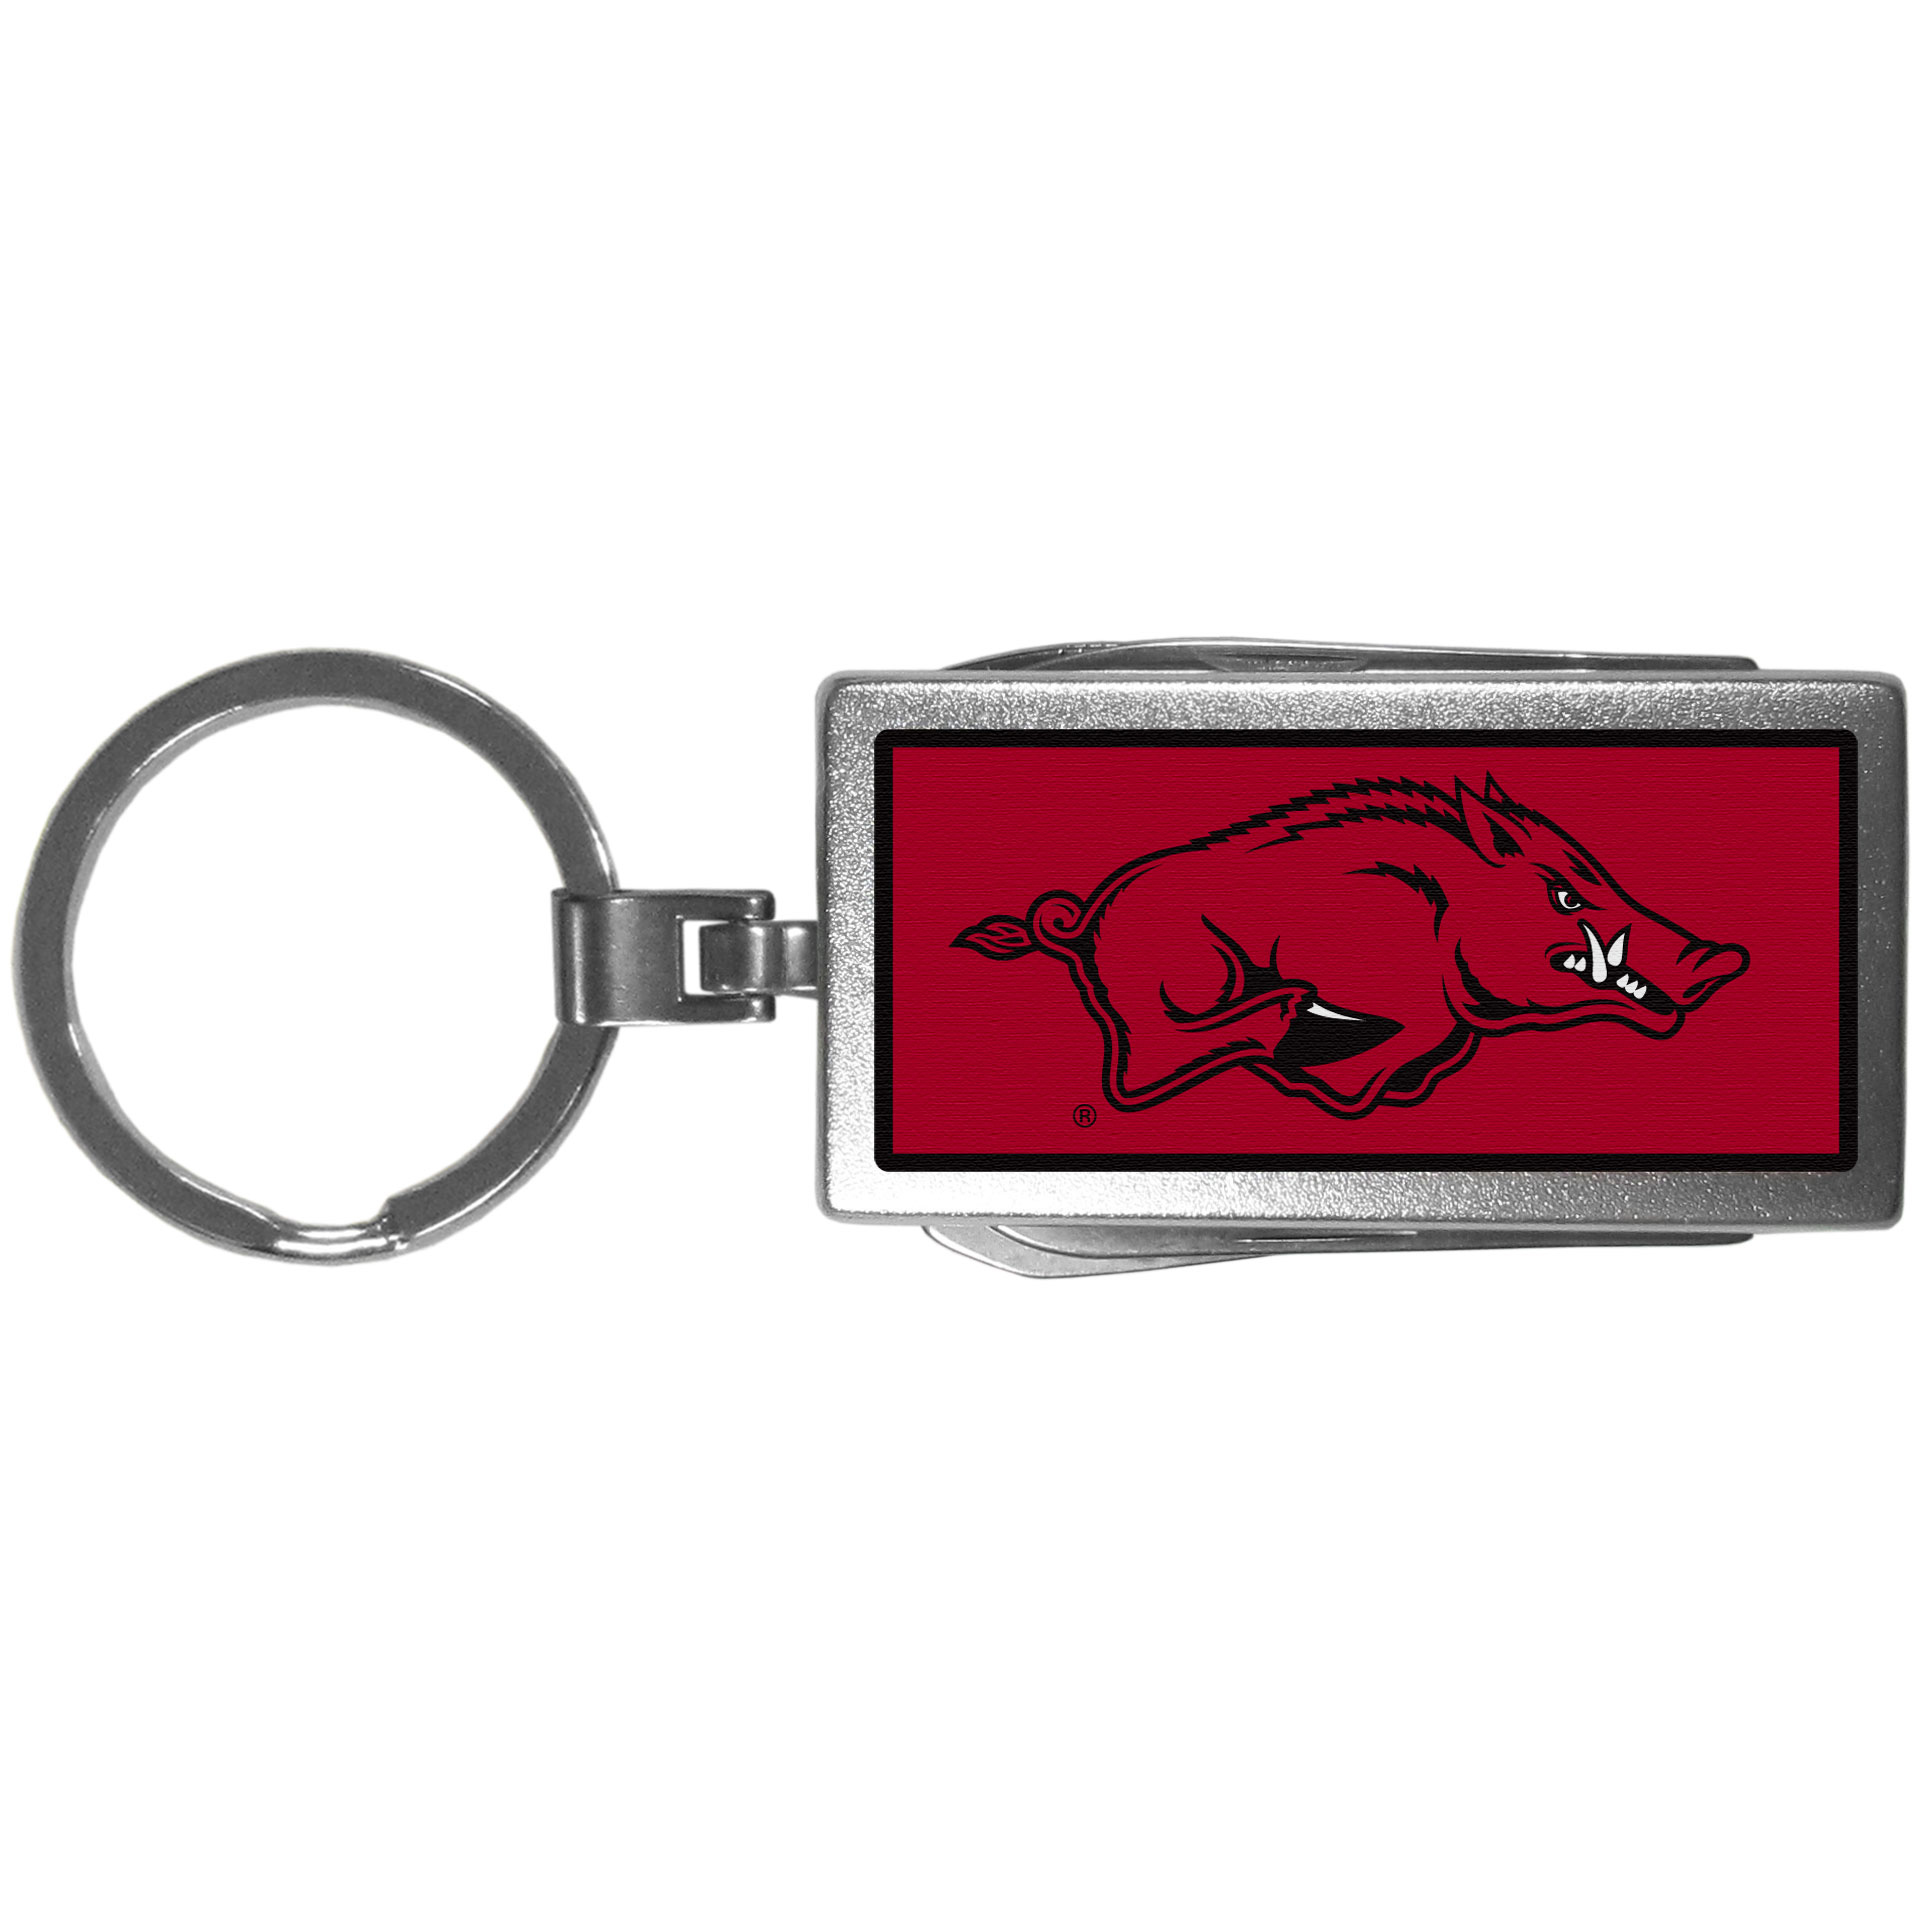 Arkansas Razorbacks Multi-tool Key Chain, Logo - Be the hero at the tailgate, camping, or on a Friday night with your Arkansas Razorbacks Multi-Tool Keychain which comes complete with bottle opener, scissors, knife, nail file and screw driver. Be it opening a package or a beverage Siskiyou's Multi-Tool Keychain goes wherever your keys do. The keychain hangs at 4 inches long when closed.